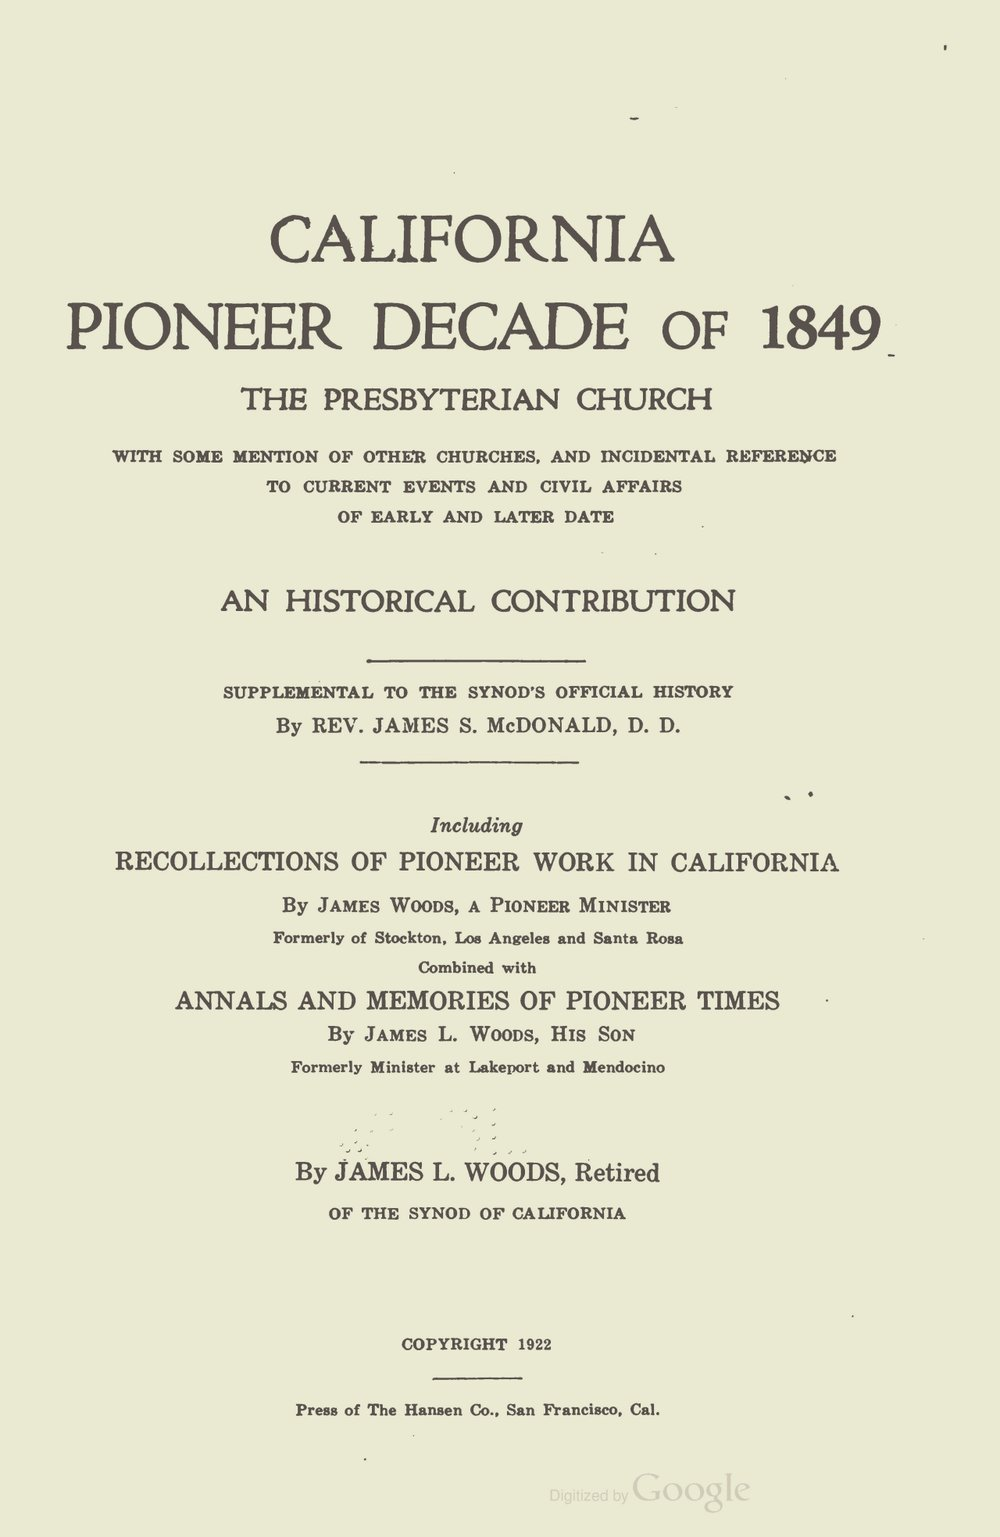 Woods, James L., California Pioneer Decade of 1849 The Presbyterian Church Title Page.jpg